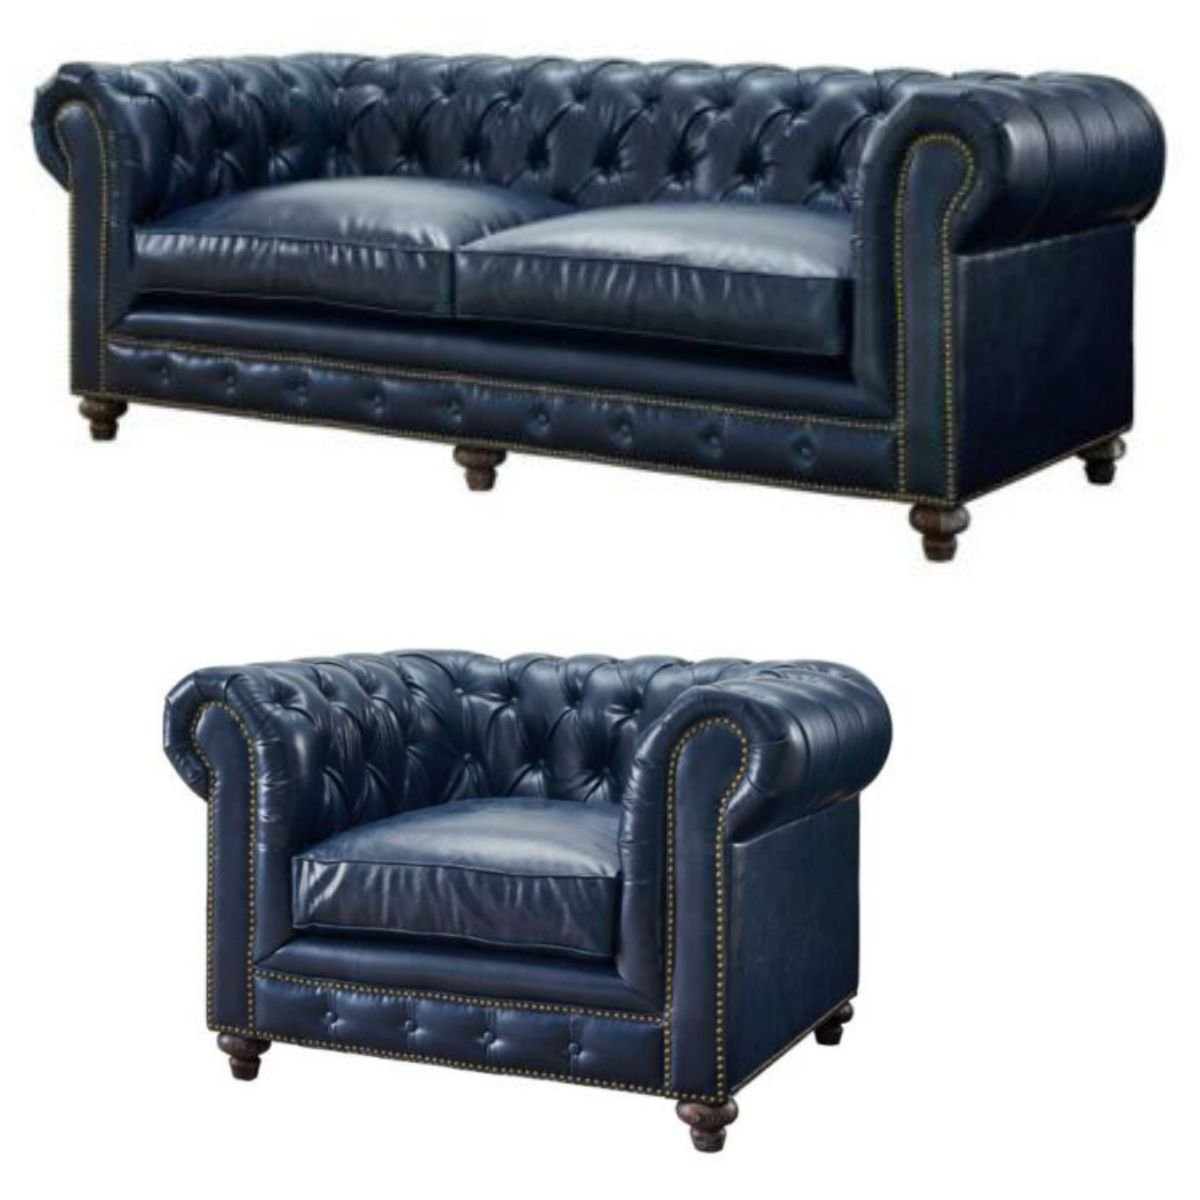 Swell This Blue Chesterfield Sofa And Armchair Set Has All The Machost Co Dining Chair Design Ideas Machostcouk